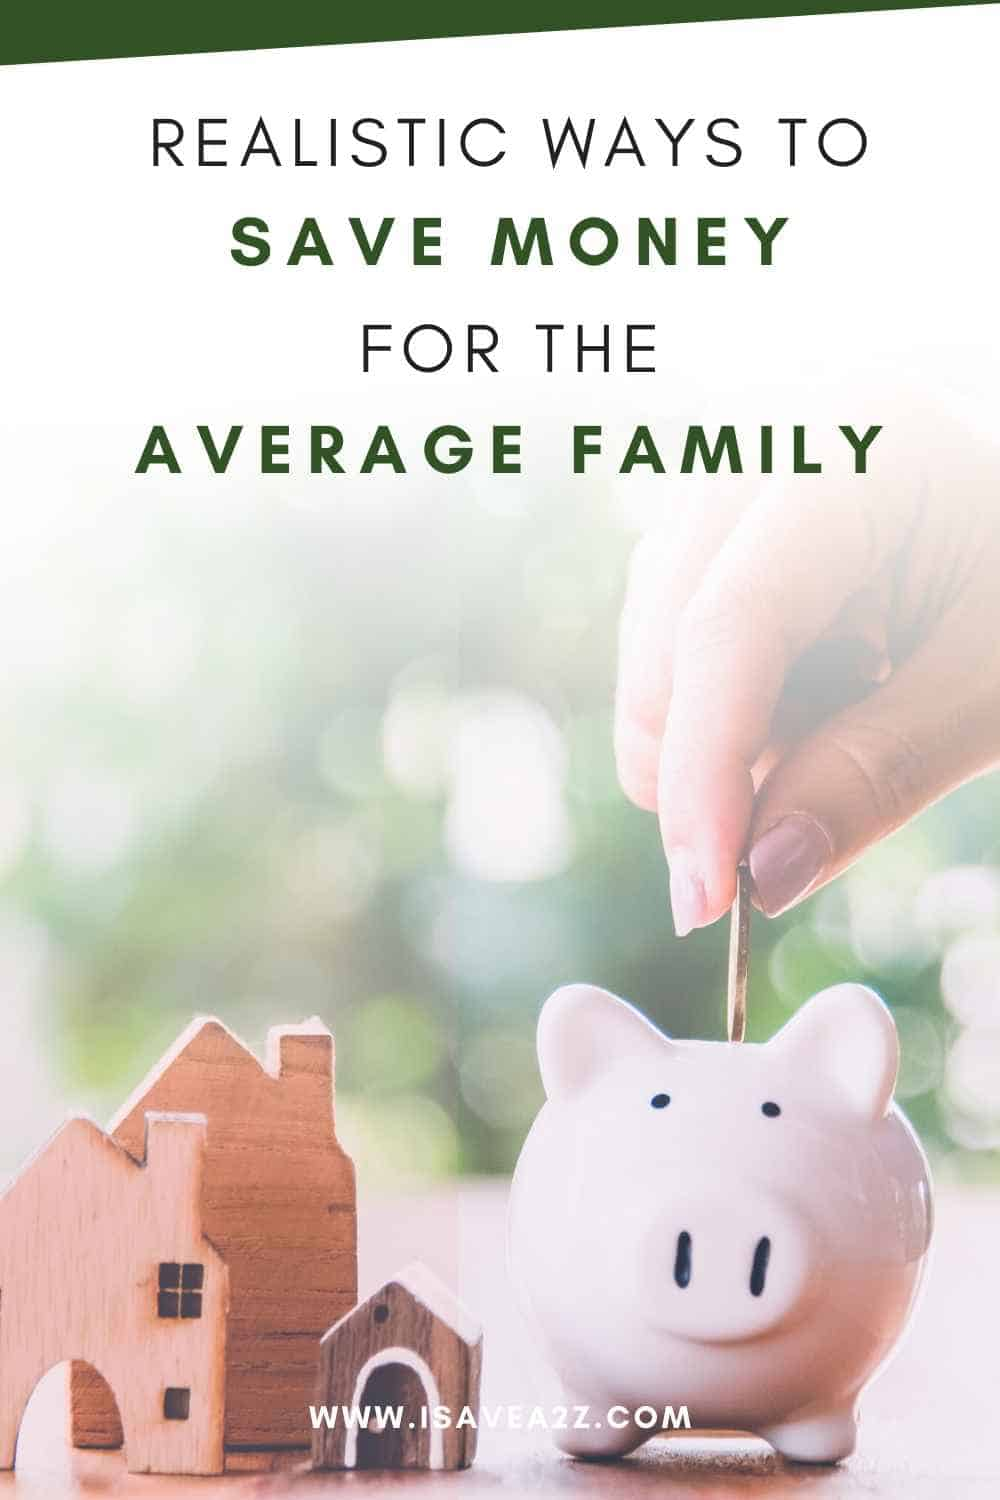 Realistic Ways to Save Money for the Average Family